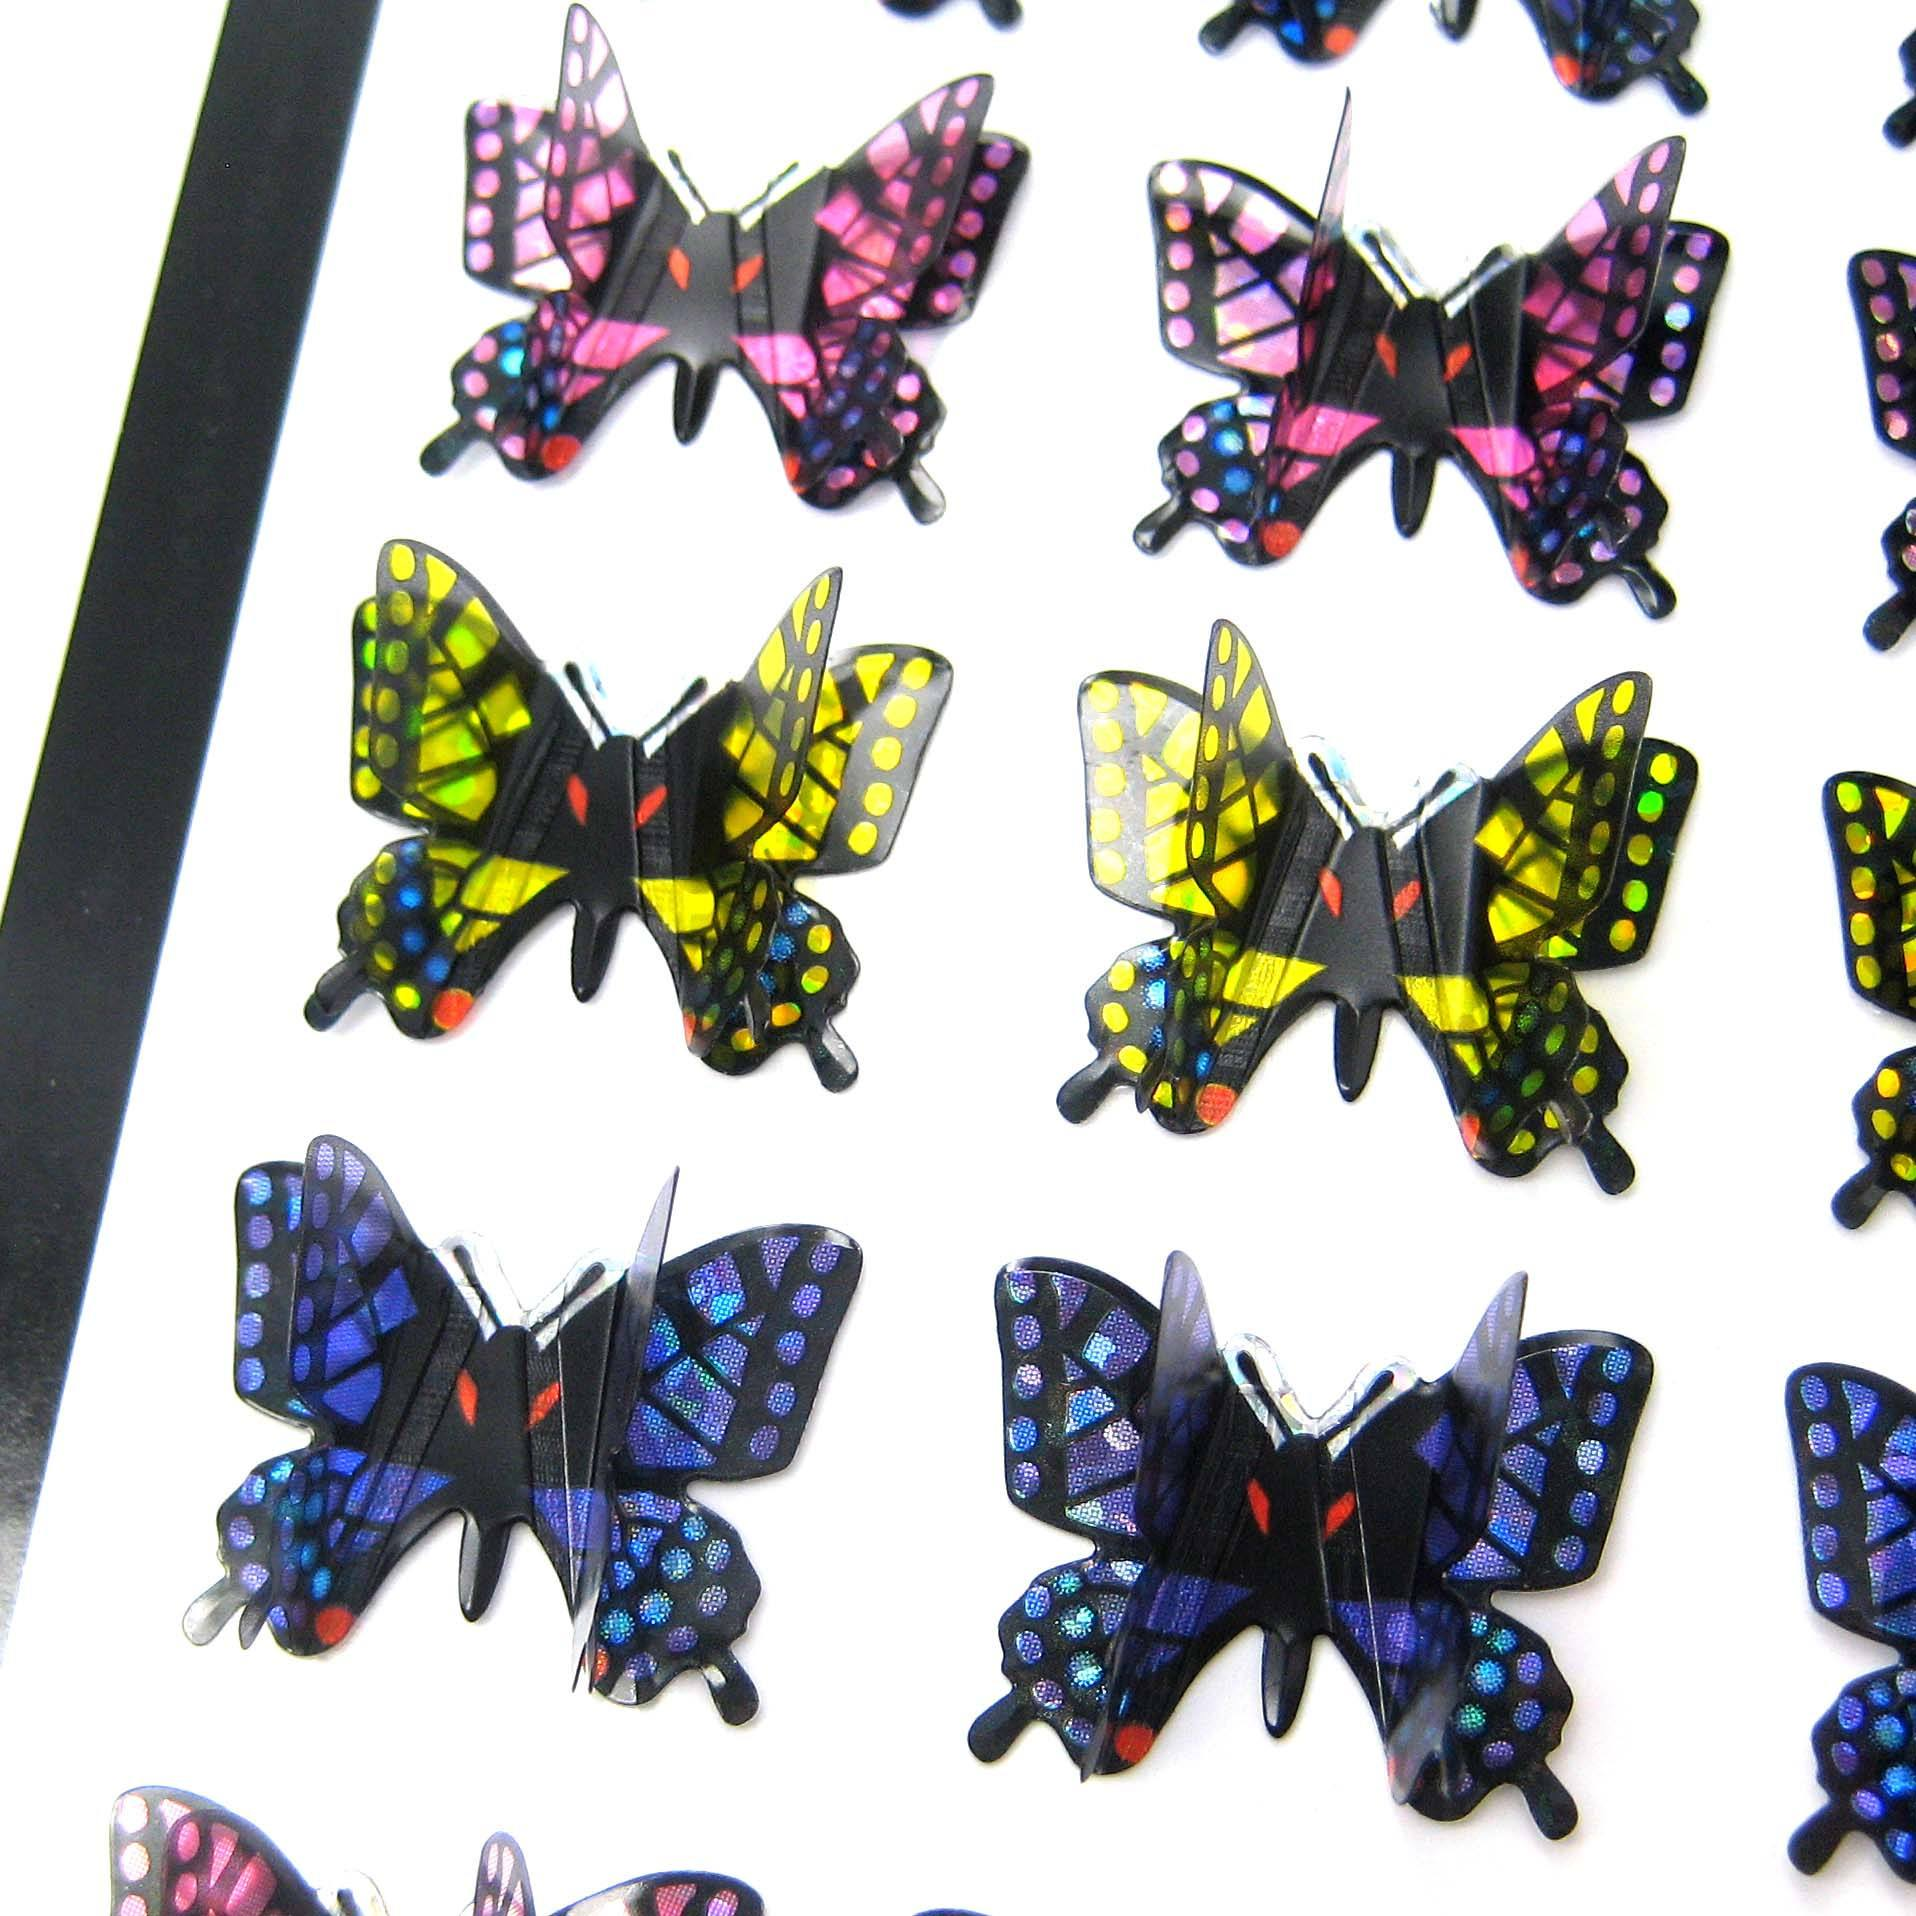 Butterfly Shaped 3D Pop-Up Stickers For Scrapbooking And